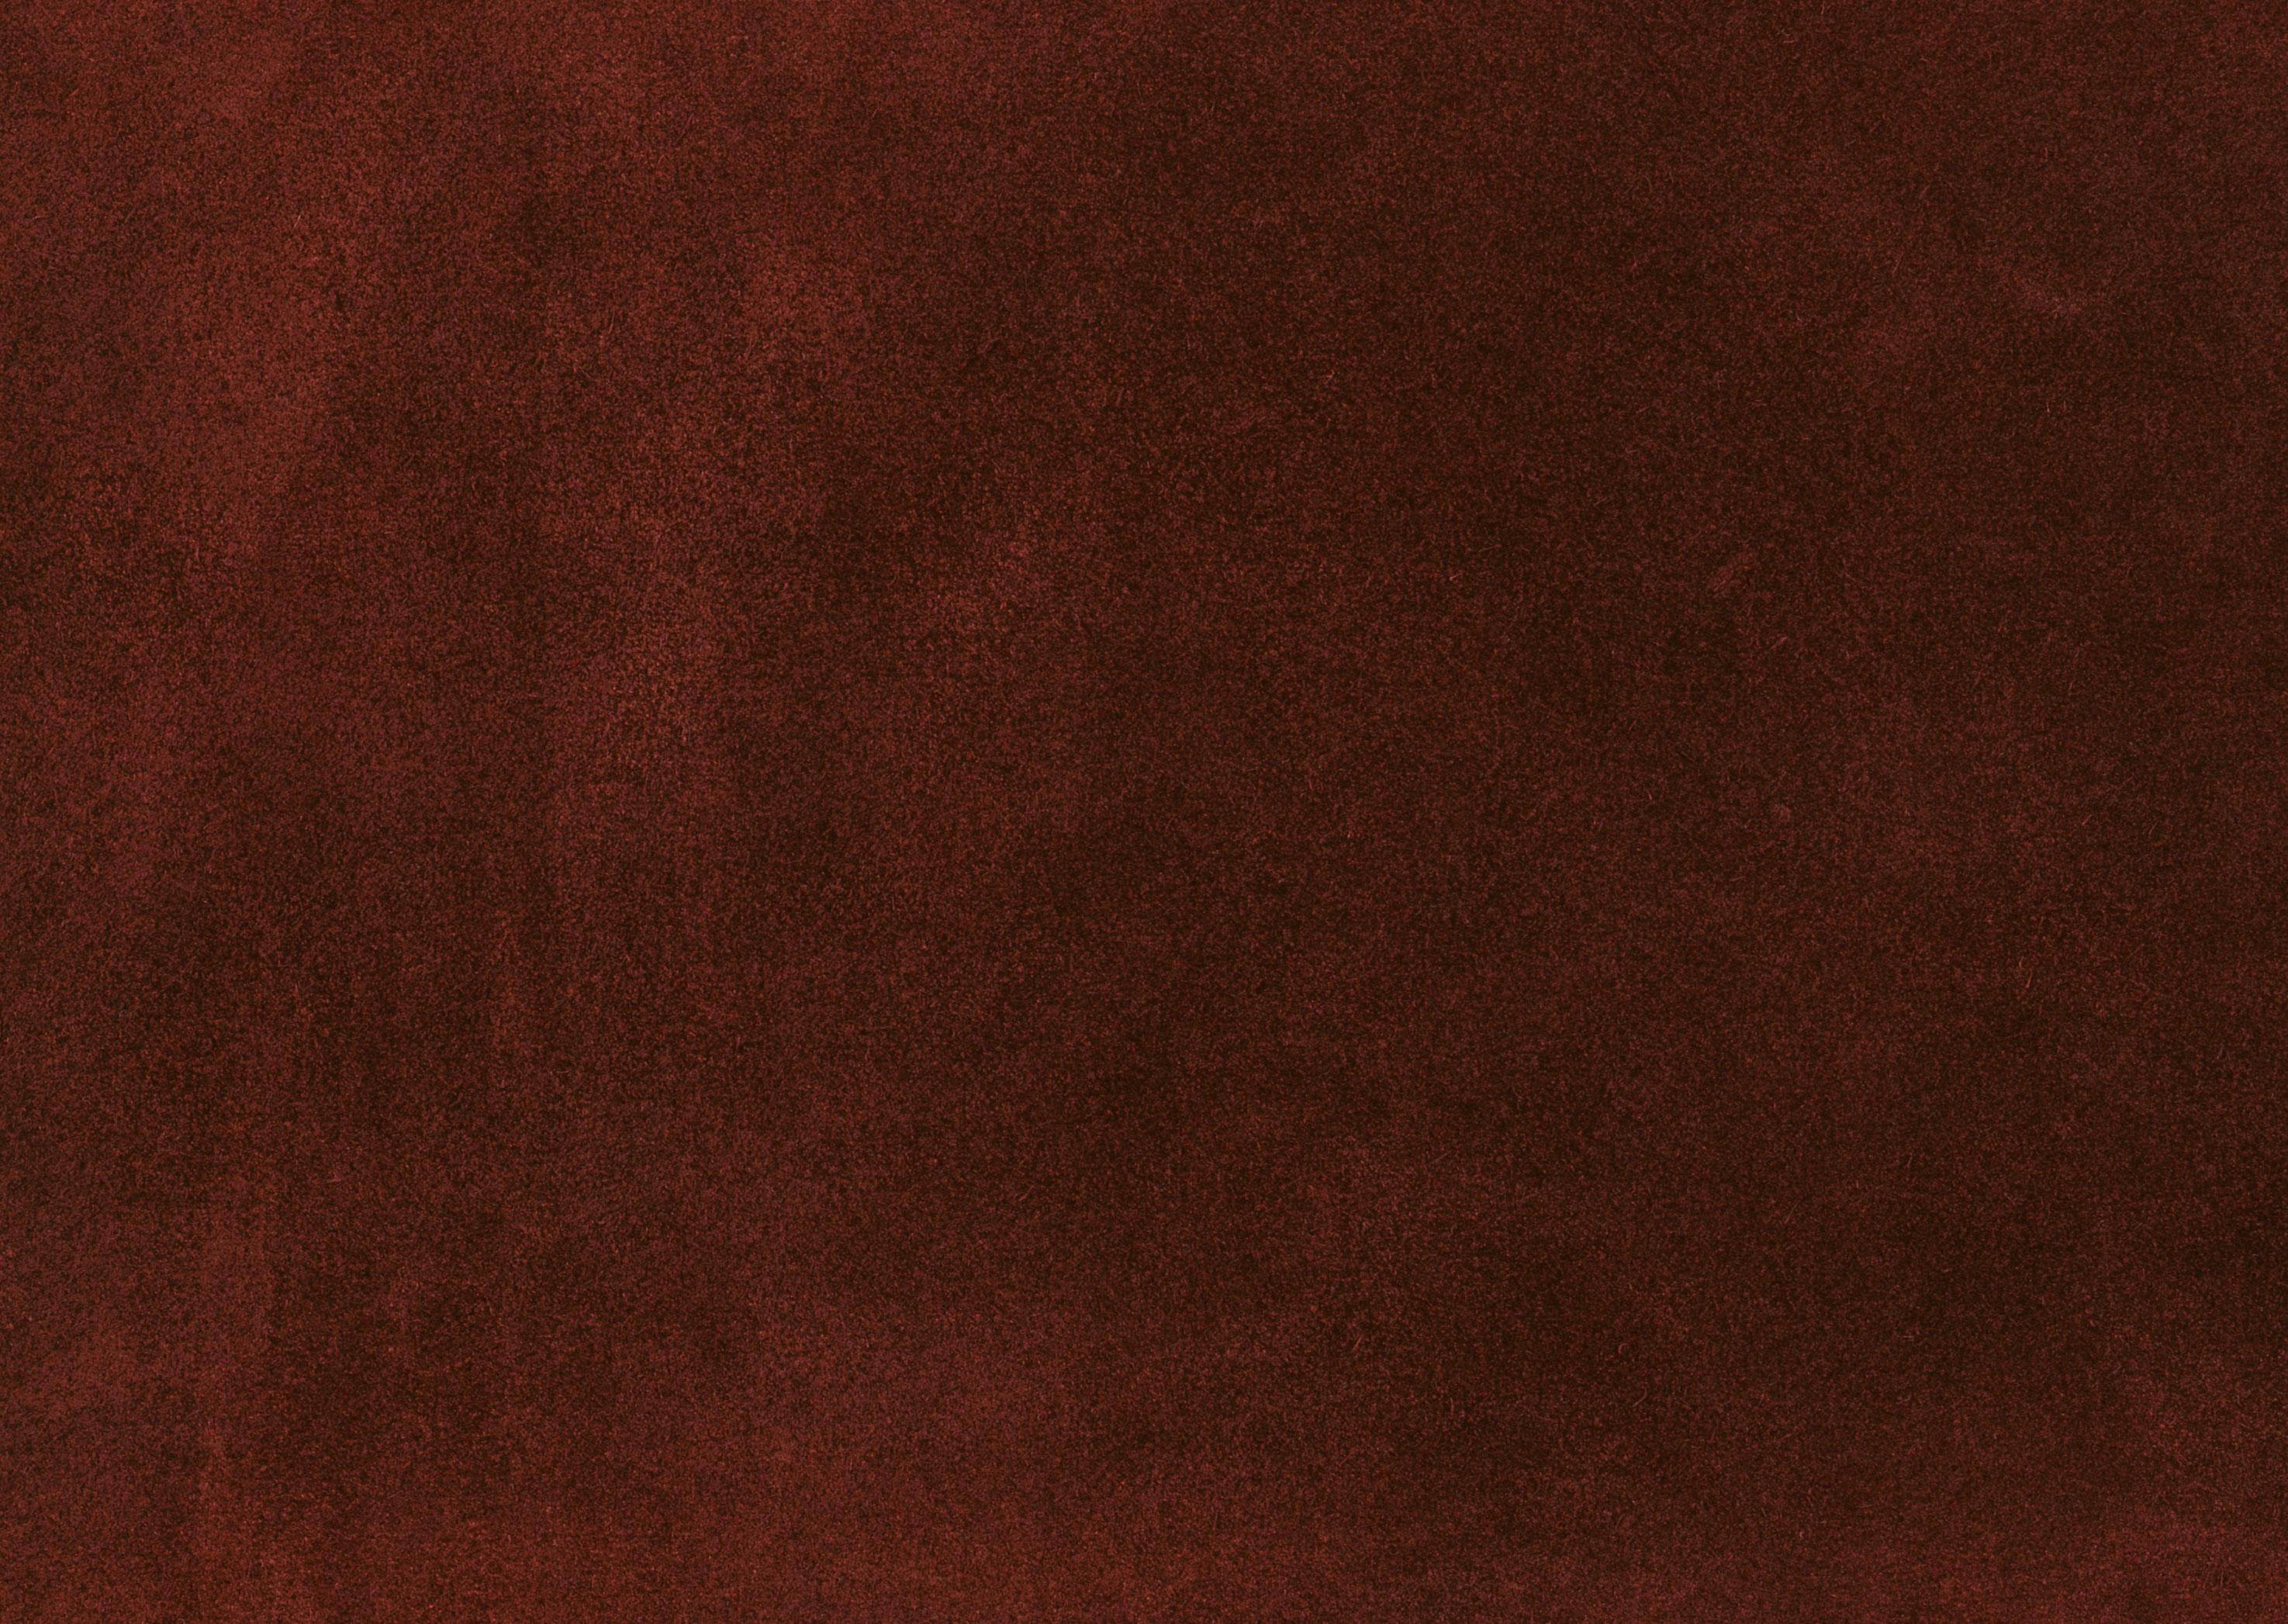 Brown leather texture background image